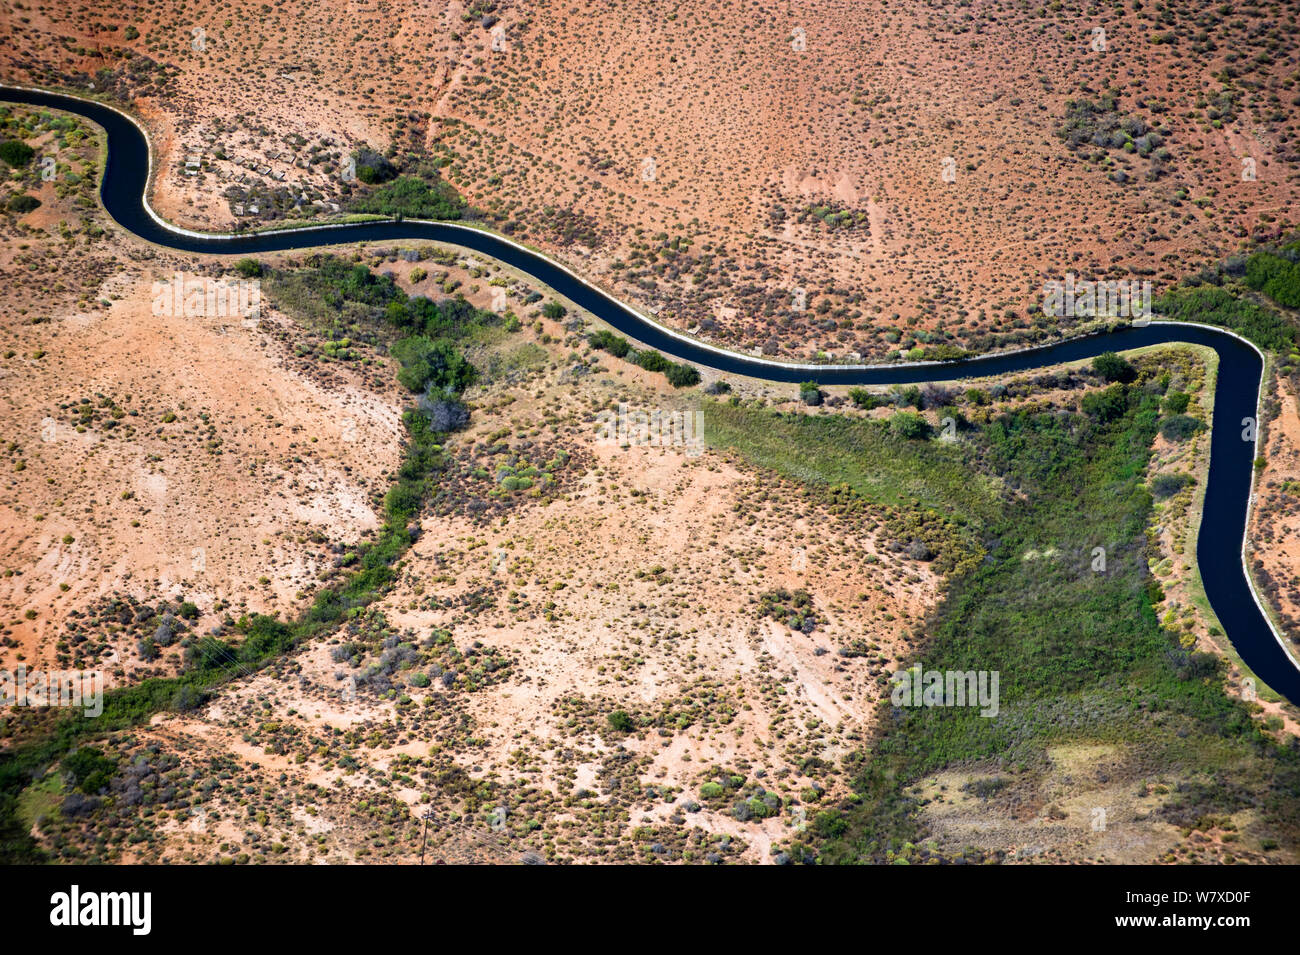 Aerial photograph of the Olifants River and the intensive irrigation / canal system used along its course, a threat to the endemic fish species found here. Citrusdal and Clanwilliam area, Western Cape, South Africa. December 2013. Stock Photo